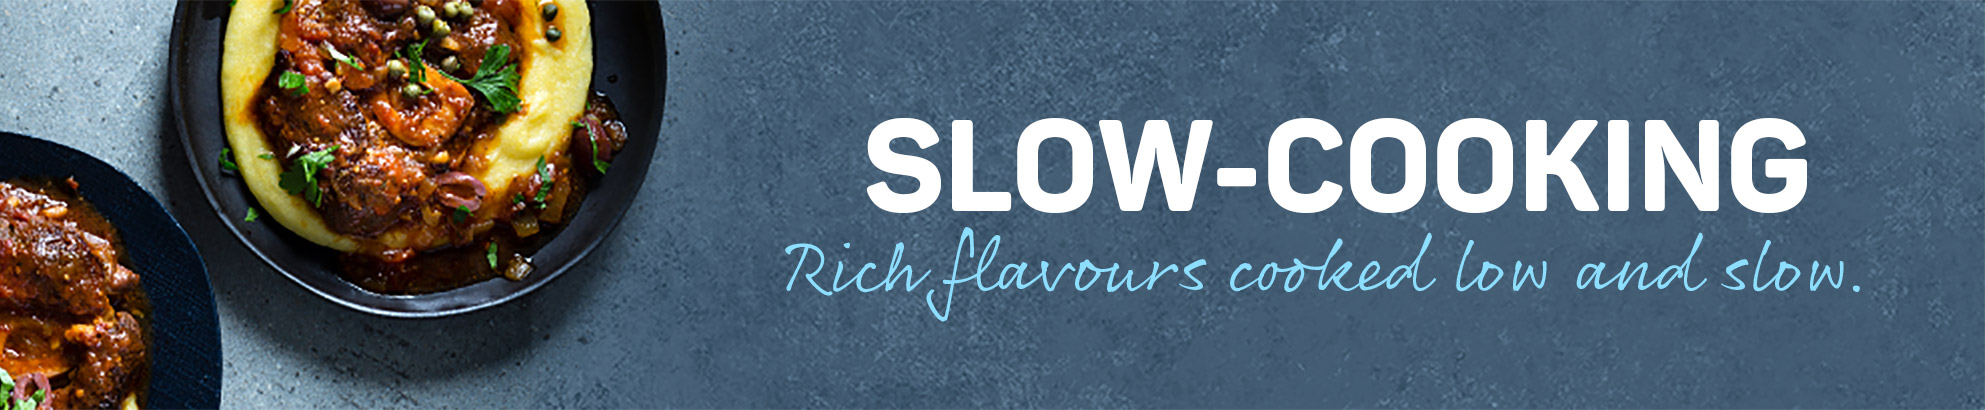 Slow-cooking - Rich flavours cooked low and slow